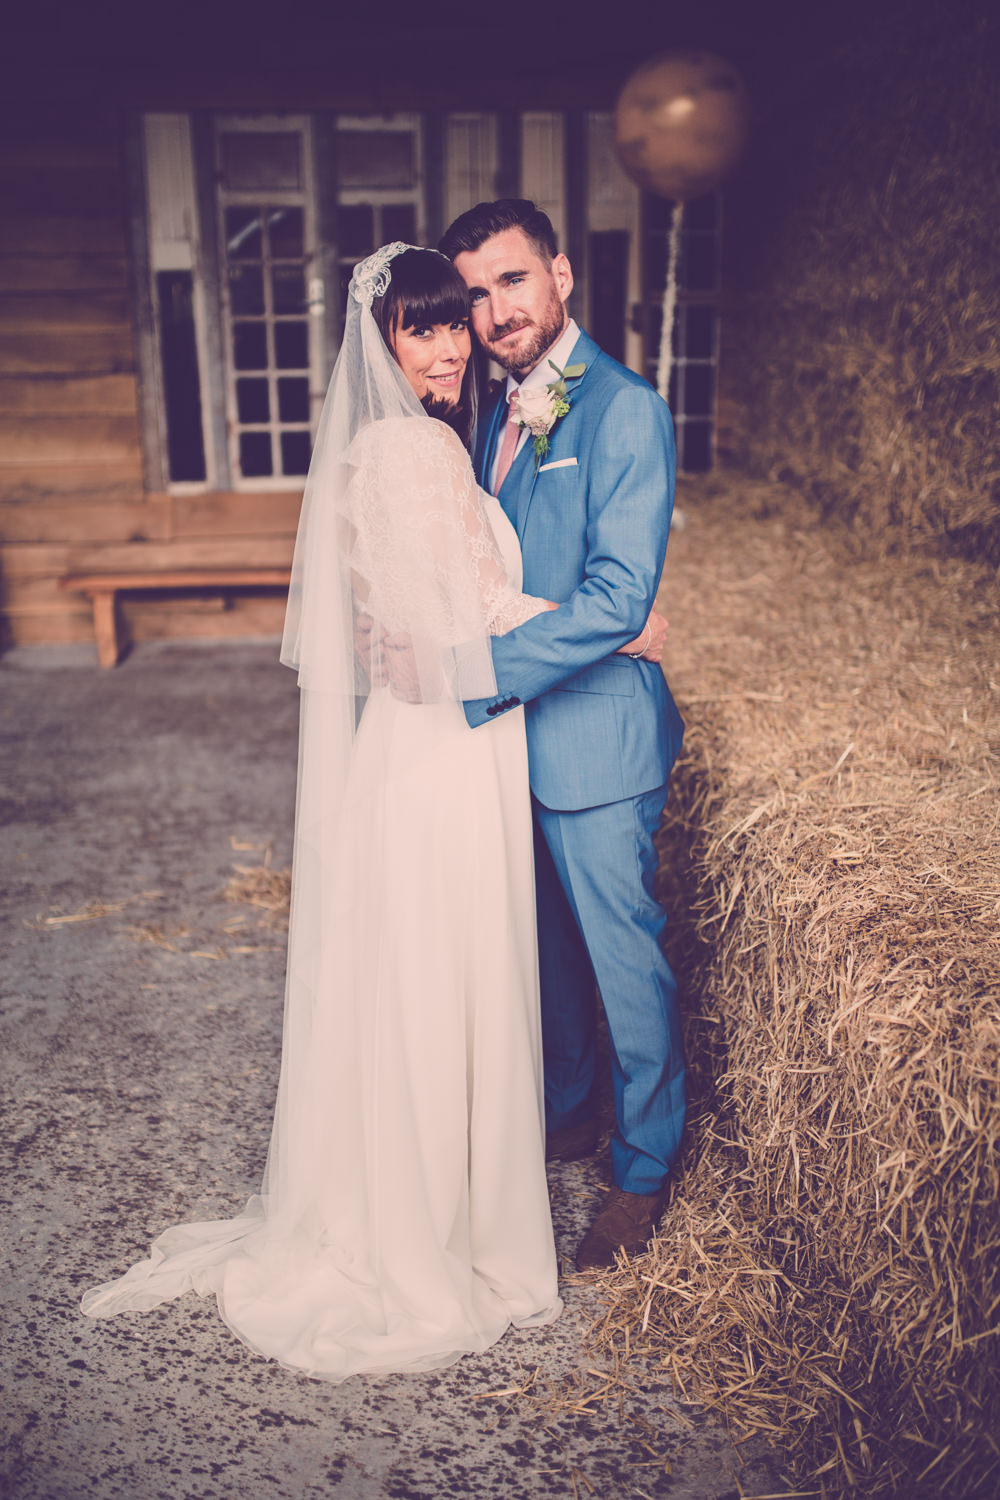 Rustic Wedding at Owen House Barn Cheshire with Rembo Bridal Gown